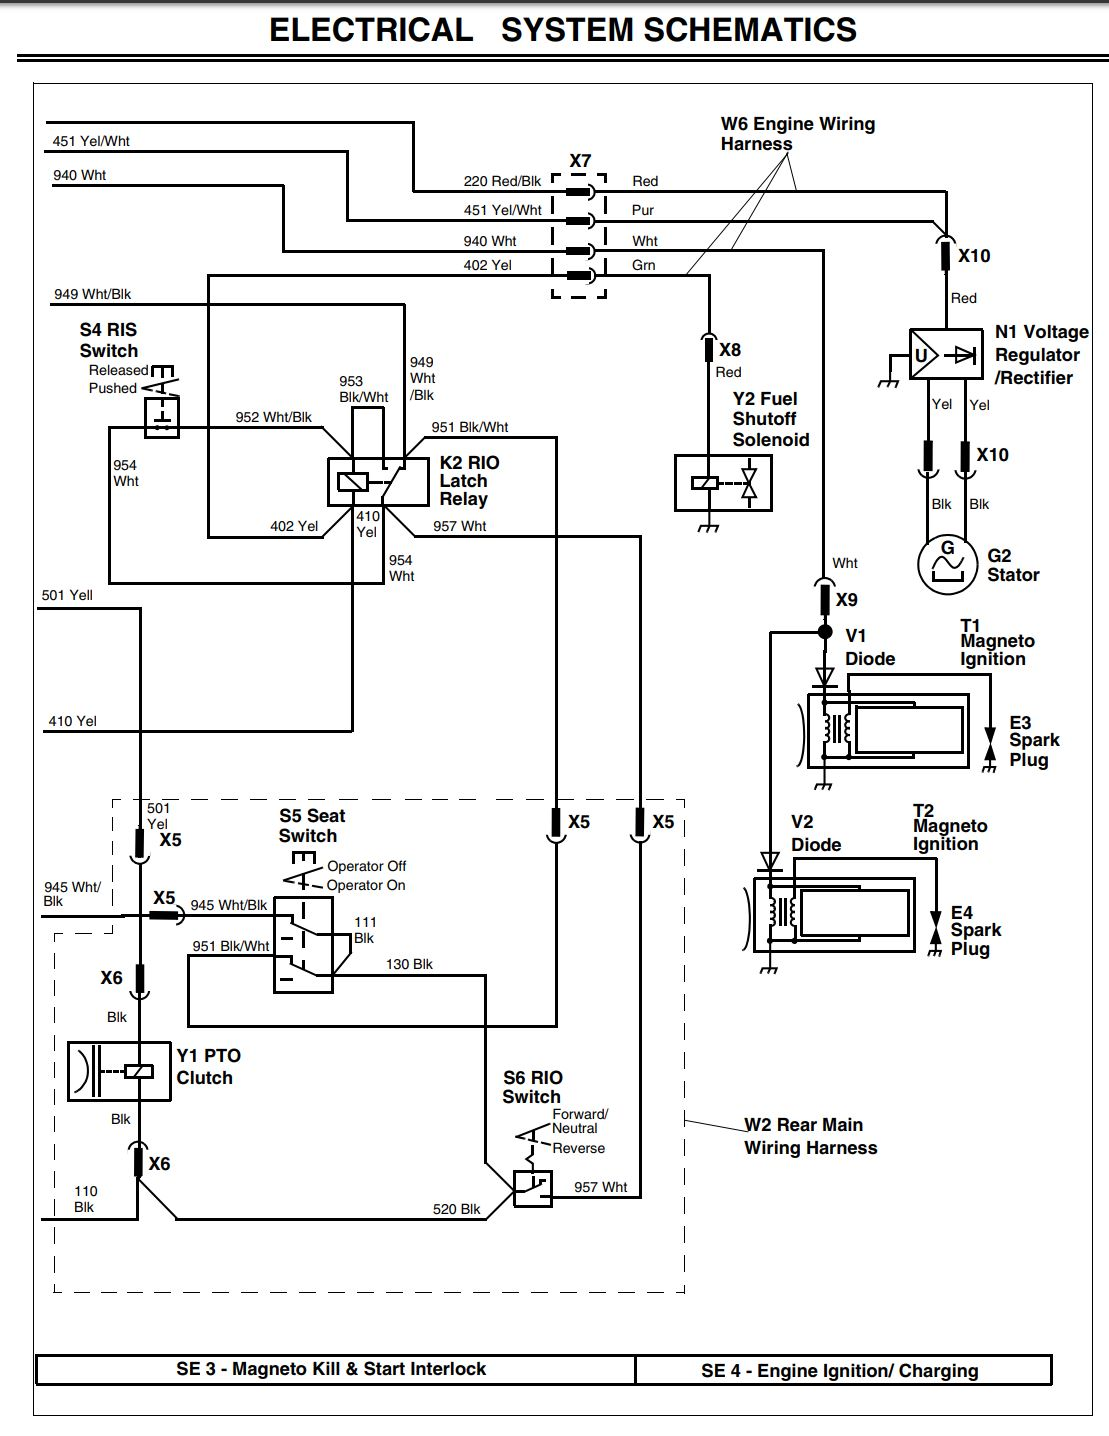 l130 wiring schematic - brain cancer diagrams list data schematic  santuariomadredelbuonconsiglio.it